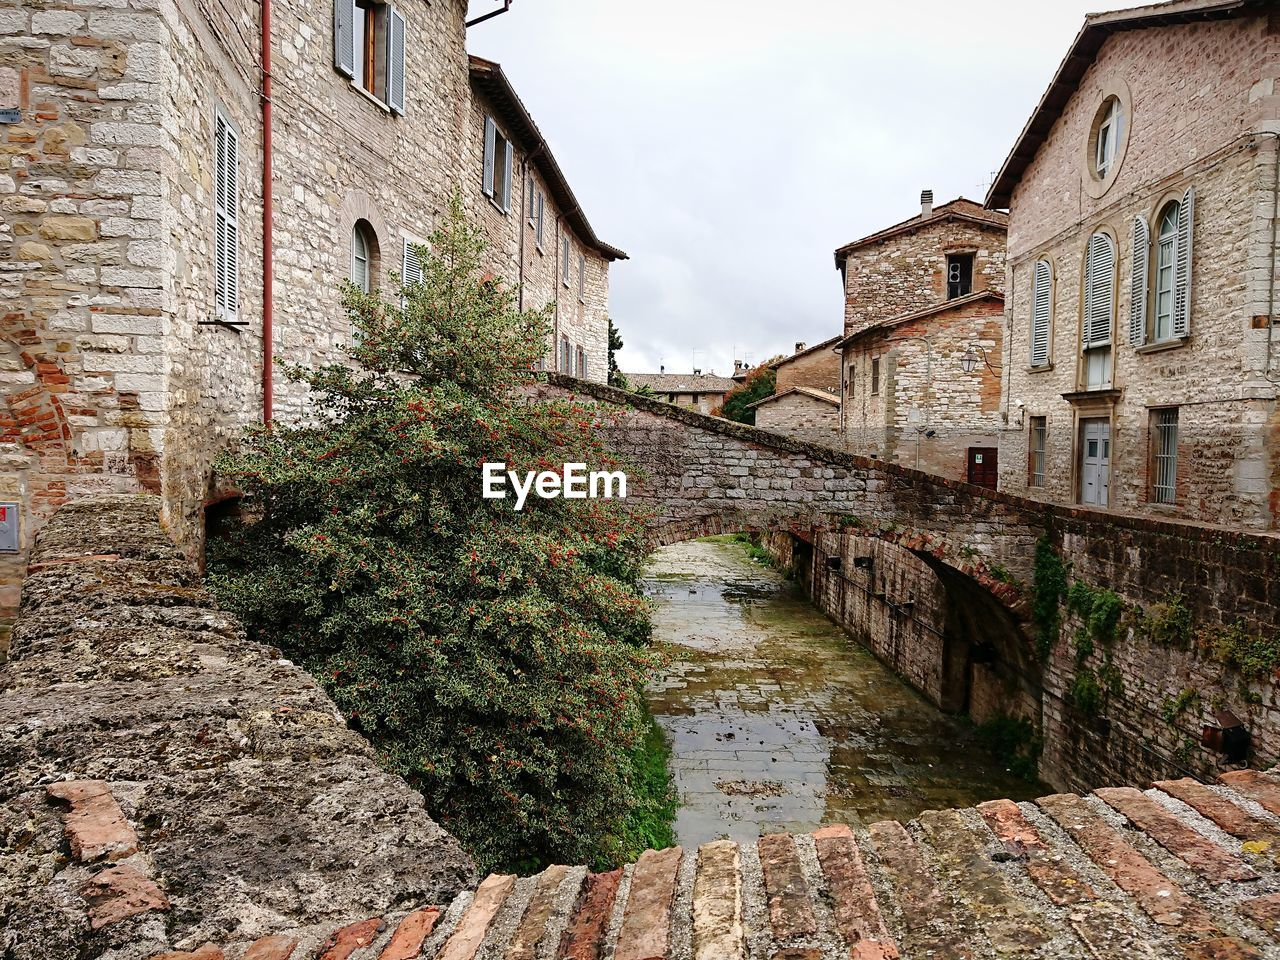 architecture, built structure, building exterior, building, water, wall, day, nature, canal, no people, sky, window, residential district, plant, wall - building feature, outdoors, old, house, brick, stone wall